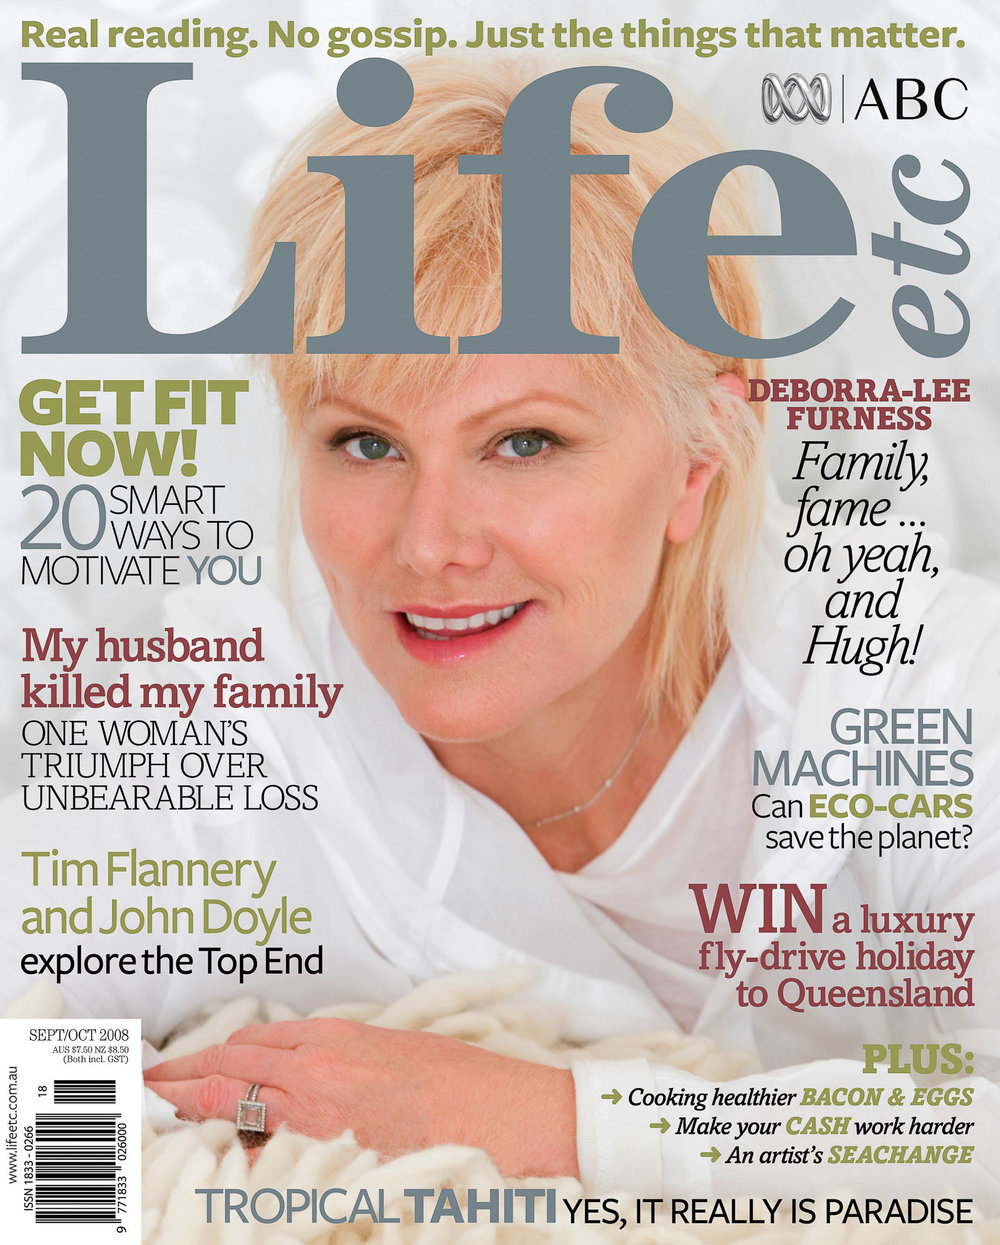 Furness Cover - ABC Life etc.jpg